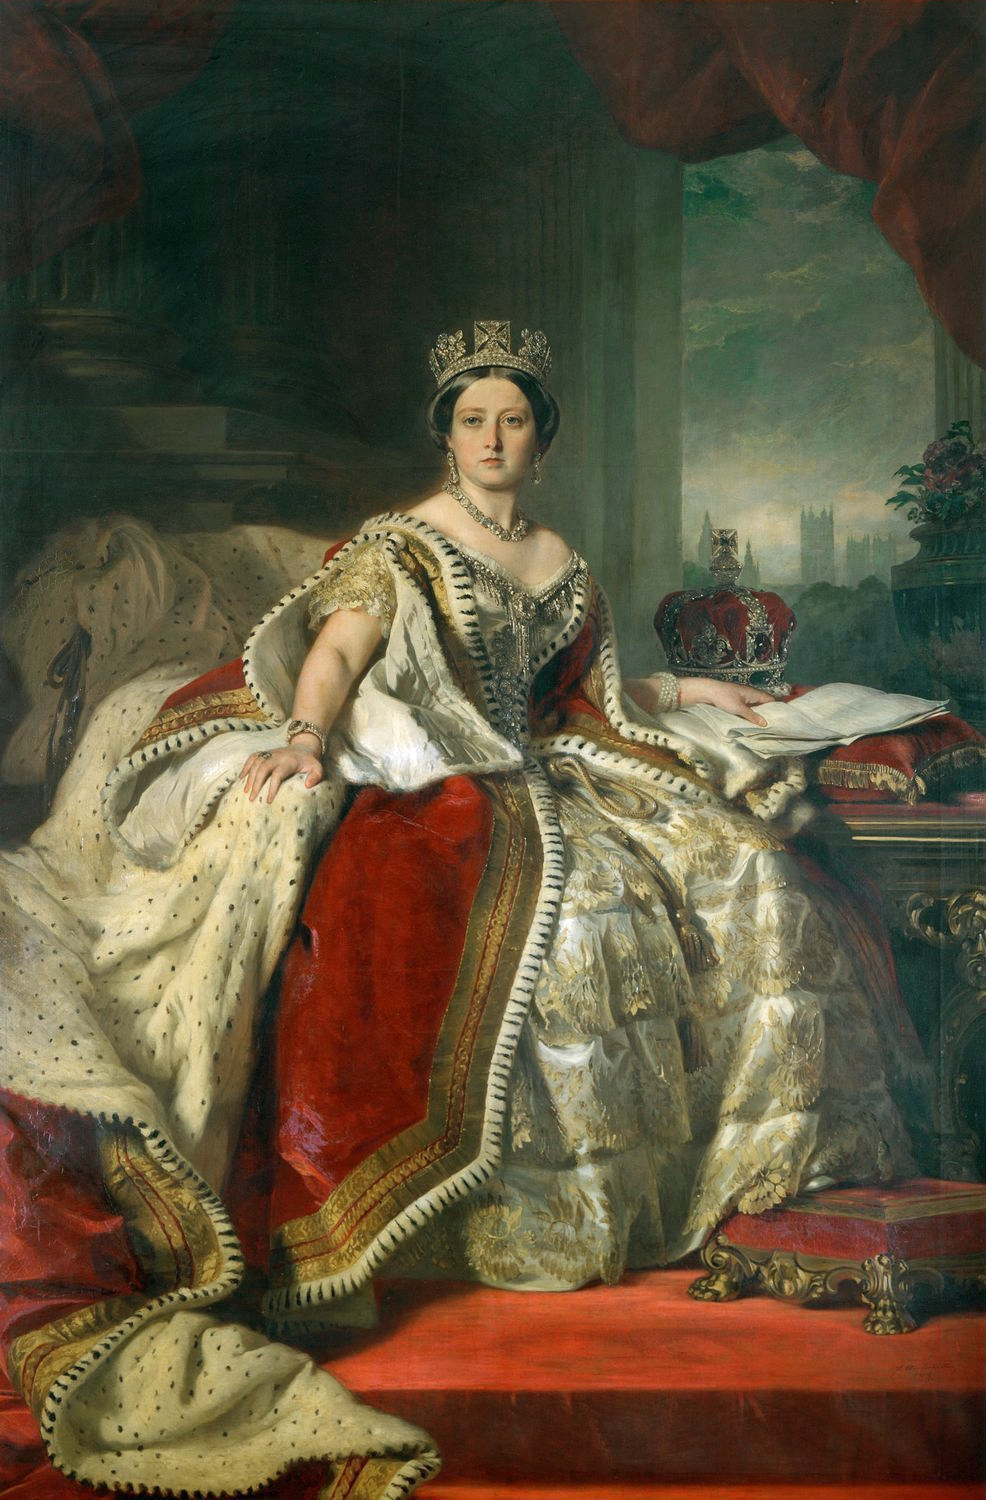 Portrait of Queen Victoria by Franz Xaver Winterhalter, 1859